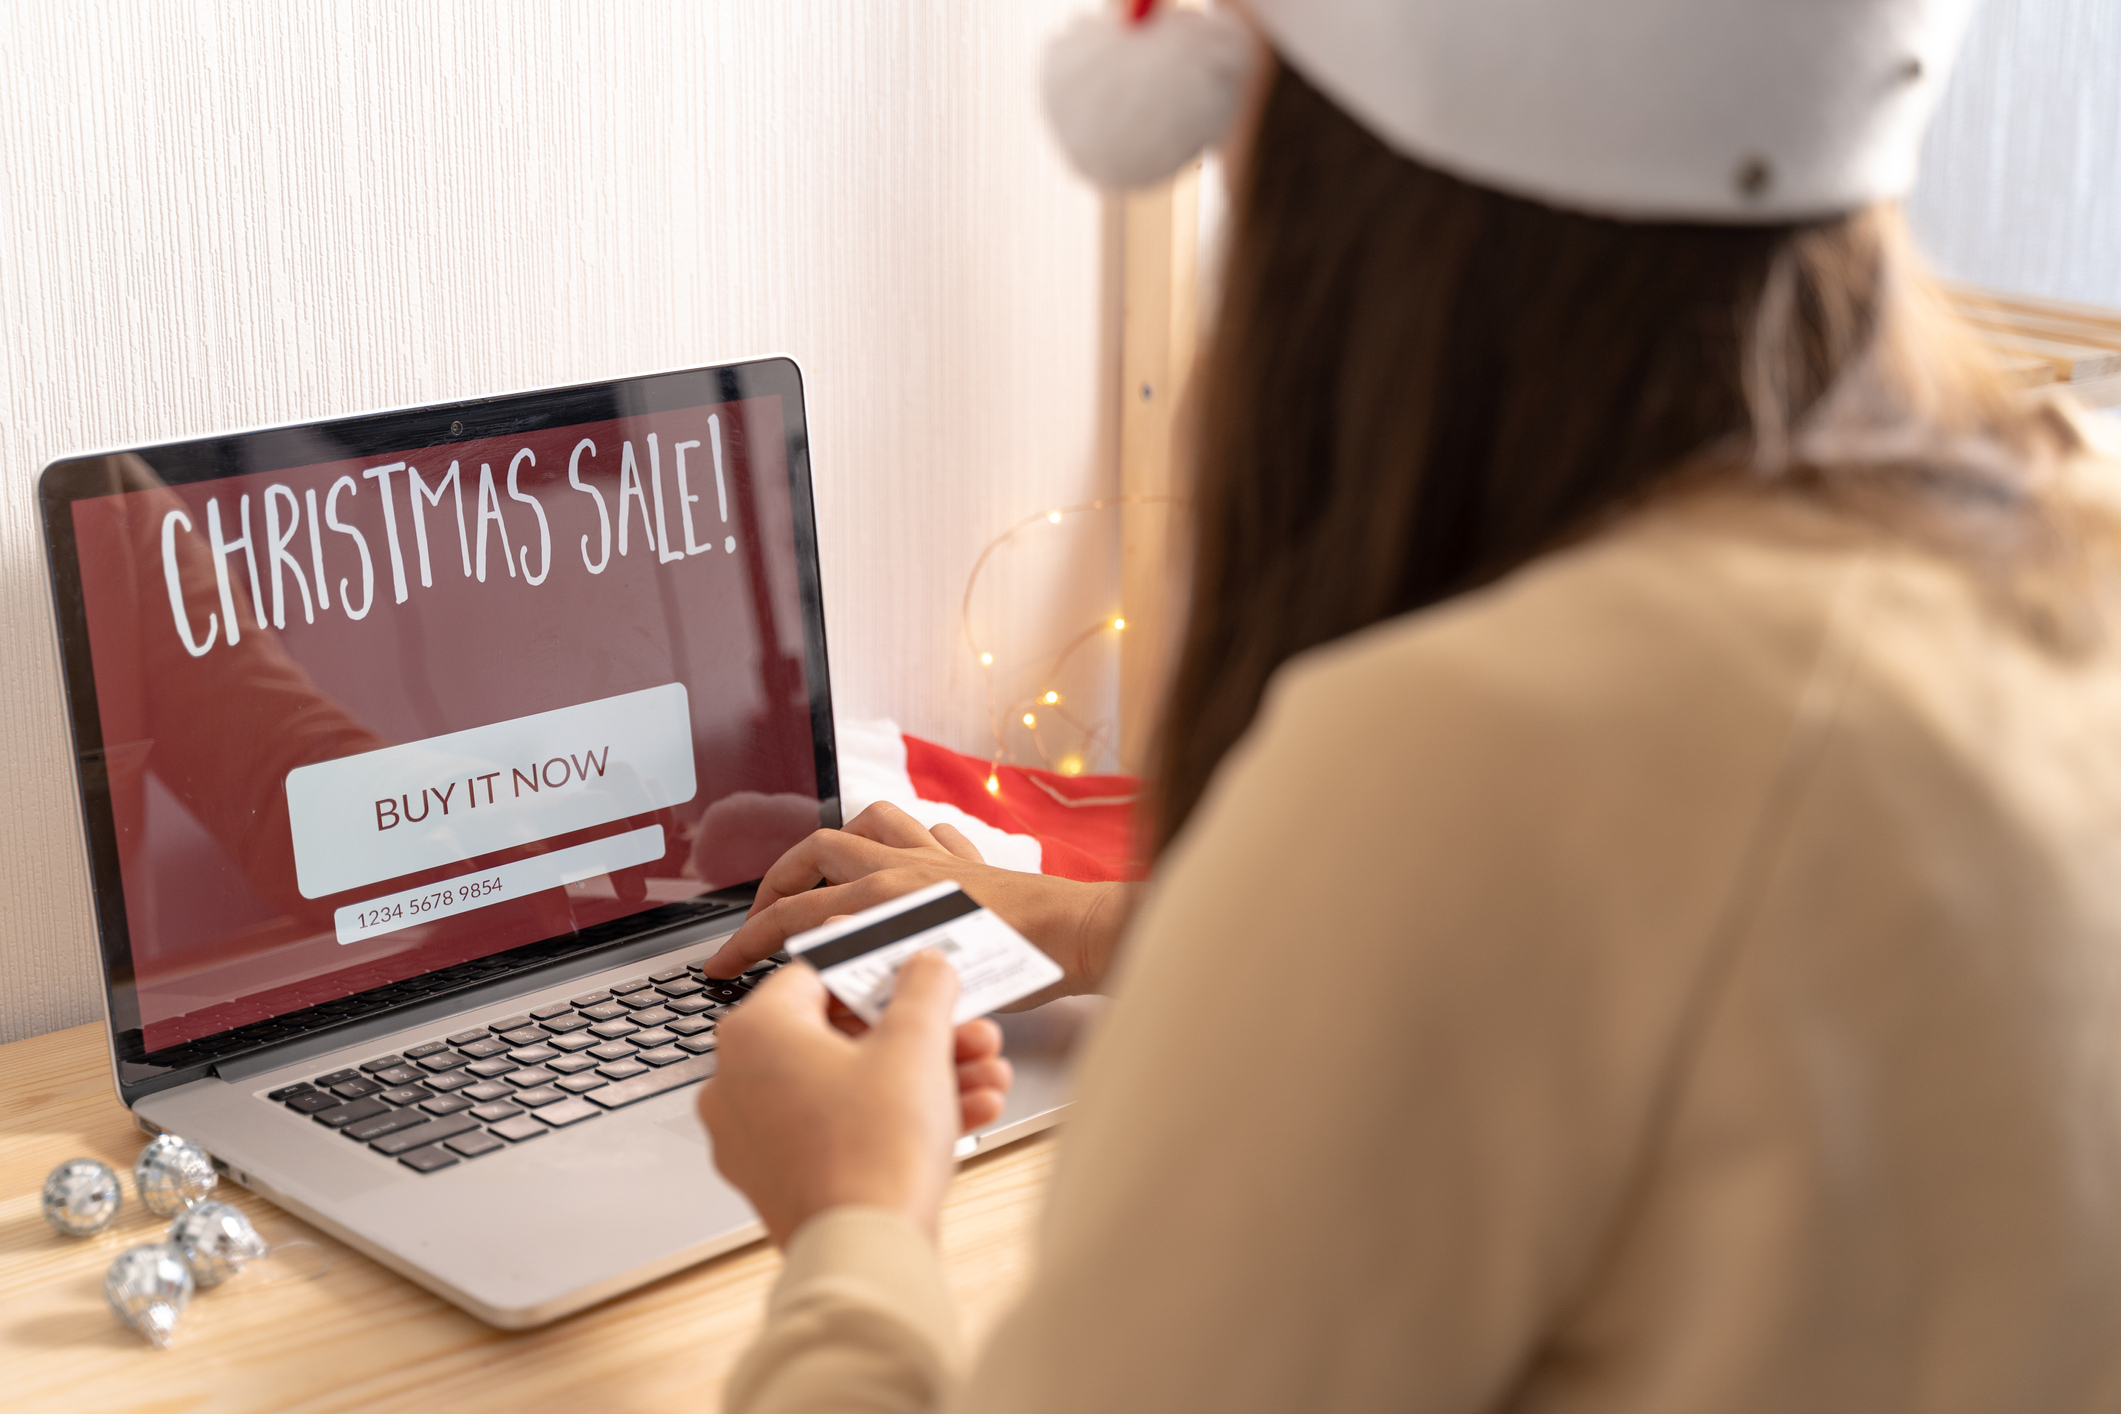 Watch Out for These Holiday Scams